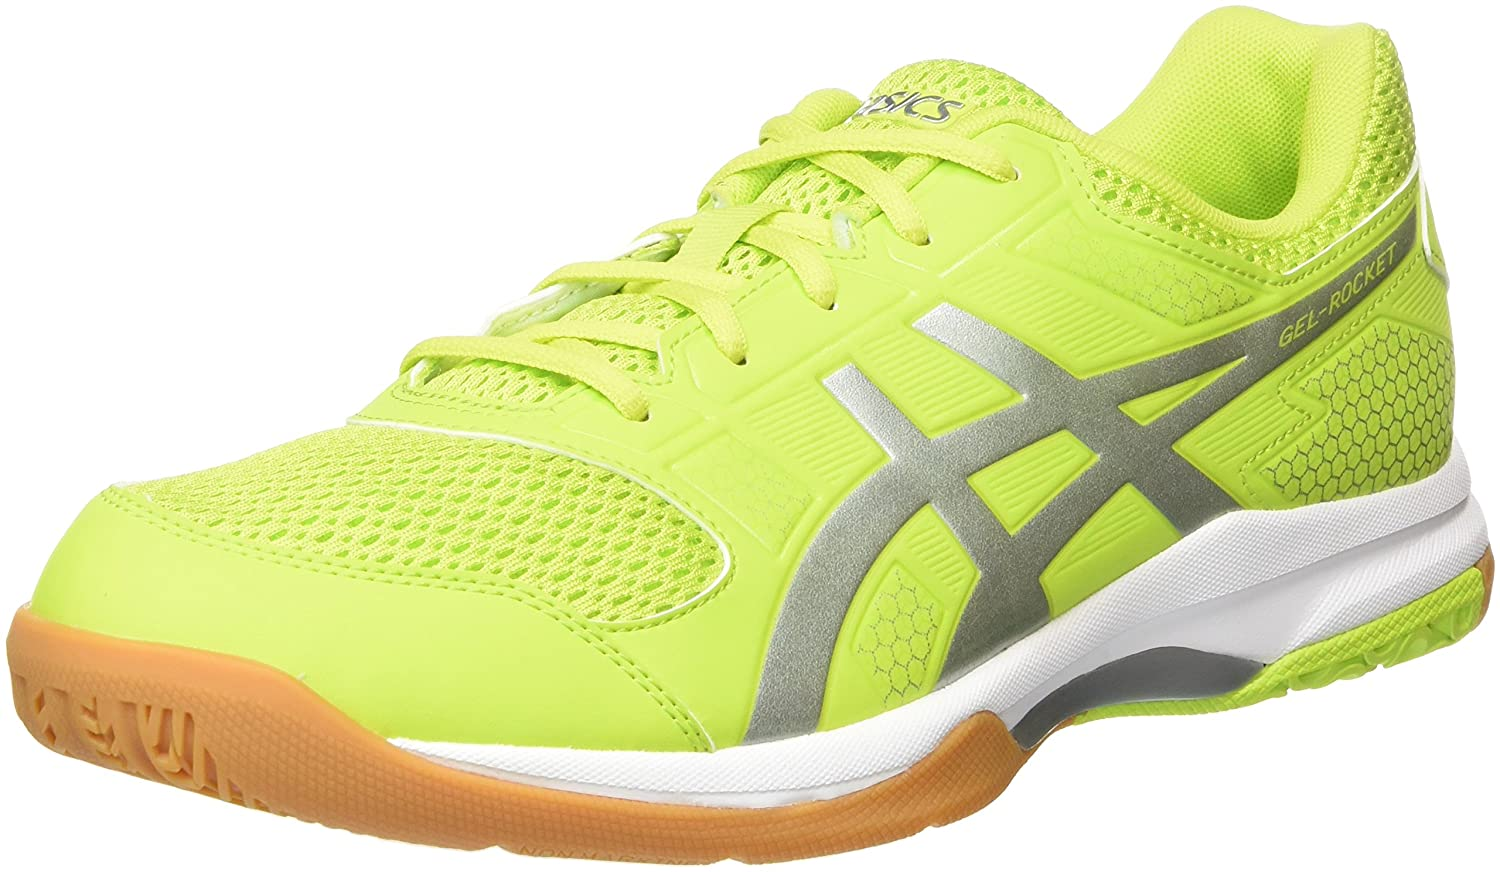 Asics Men's Gel-Rocket 8 Multisport Indoor Shoes, Green (Energy Green/Silver/White 7793),10.5 UK/46 EU B706Y